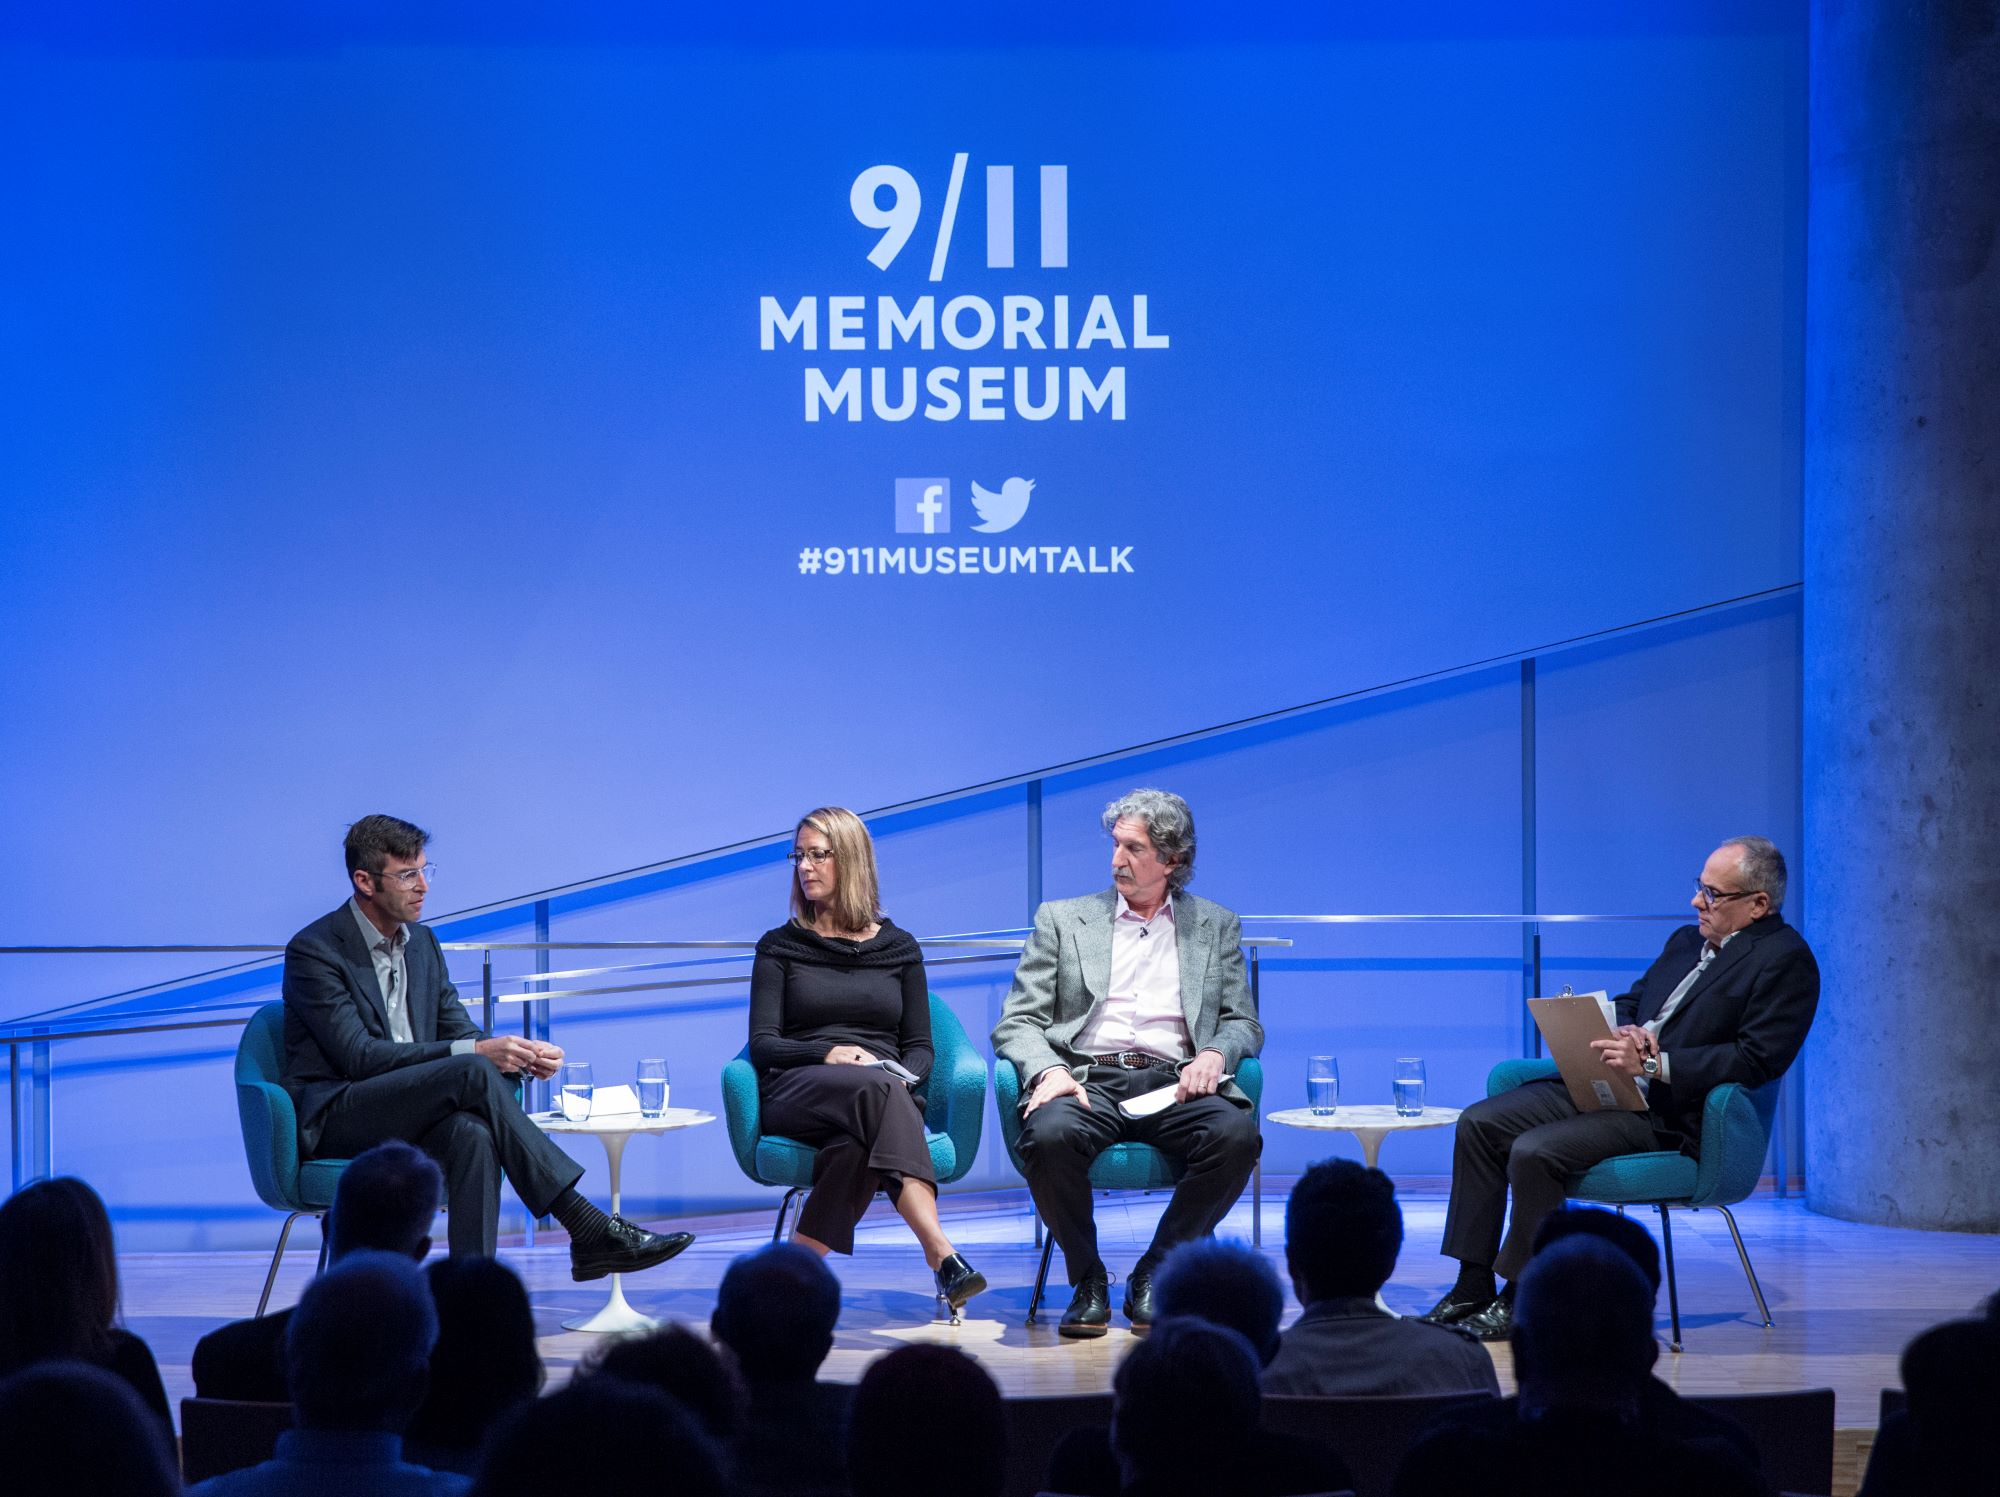 The principal architects of the 9/11 Memorial, the Flight 93 National Memorial near Shanksville, Pa. and the Pentagon Memorial in Arlington, Va., sit on the stage of the 9/11 Memorial Museum auditorium, reflecting on the relationship between architecture and remembrance.